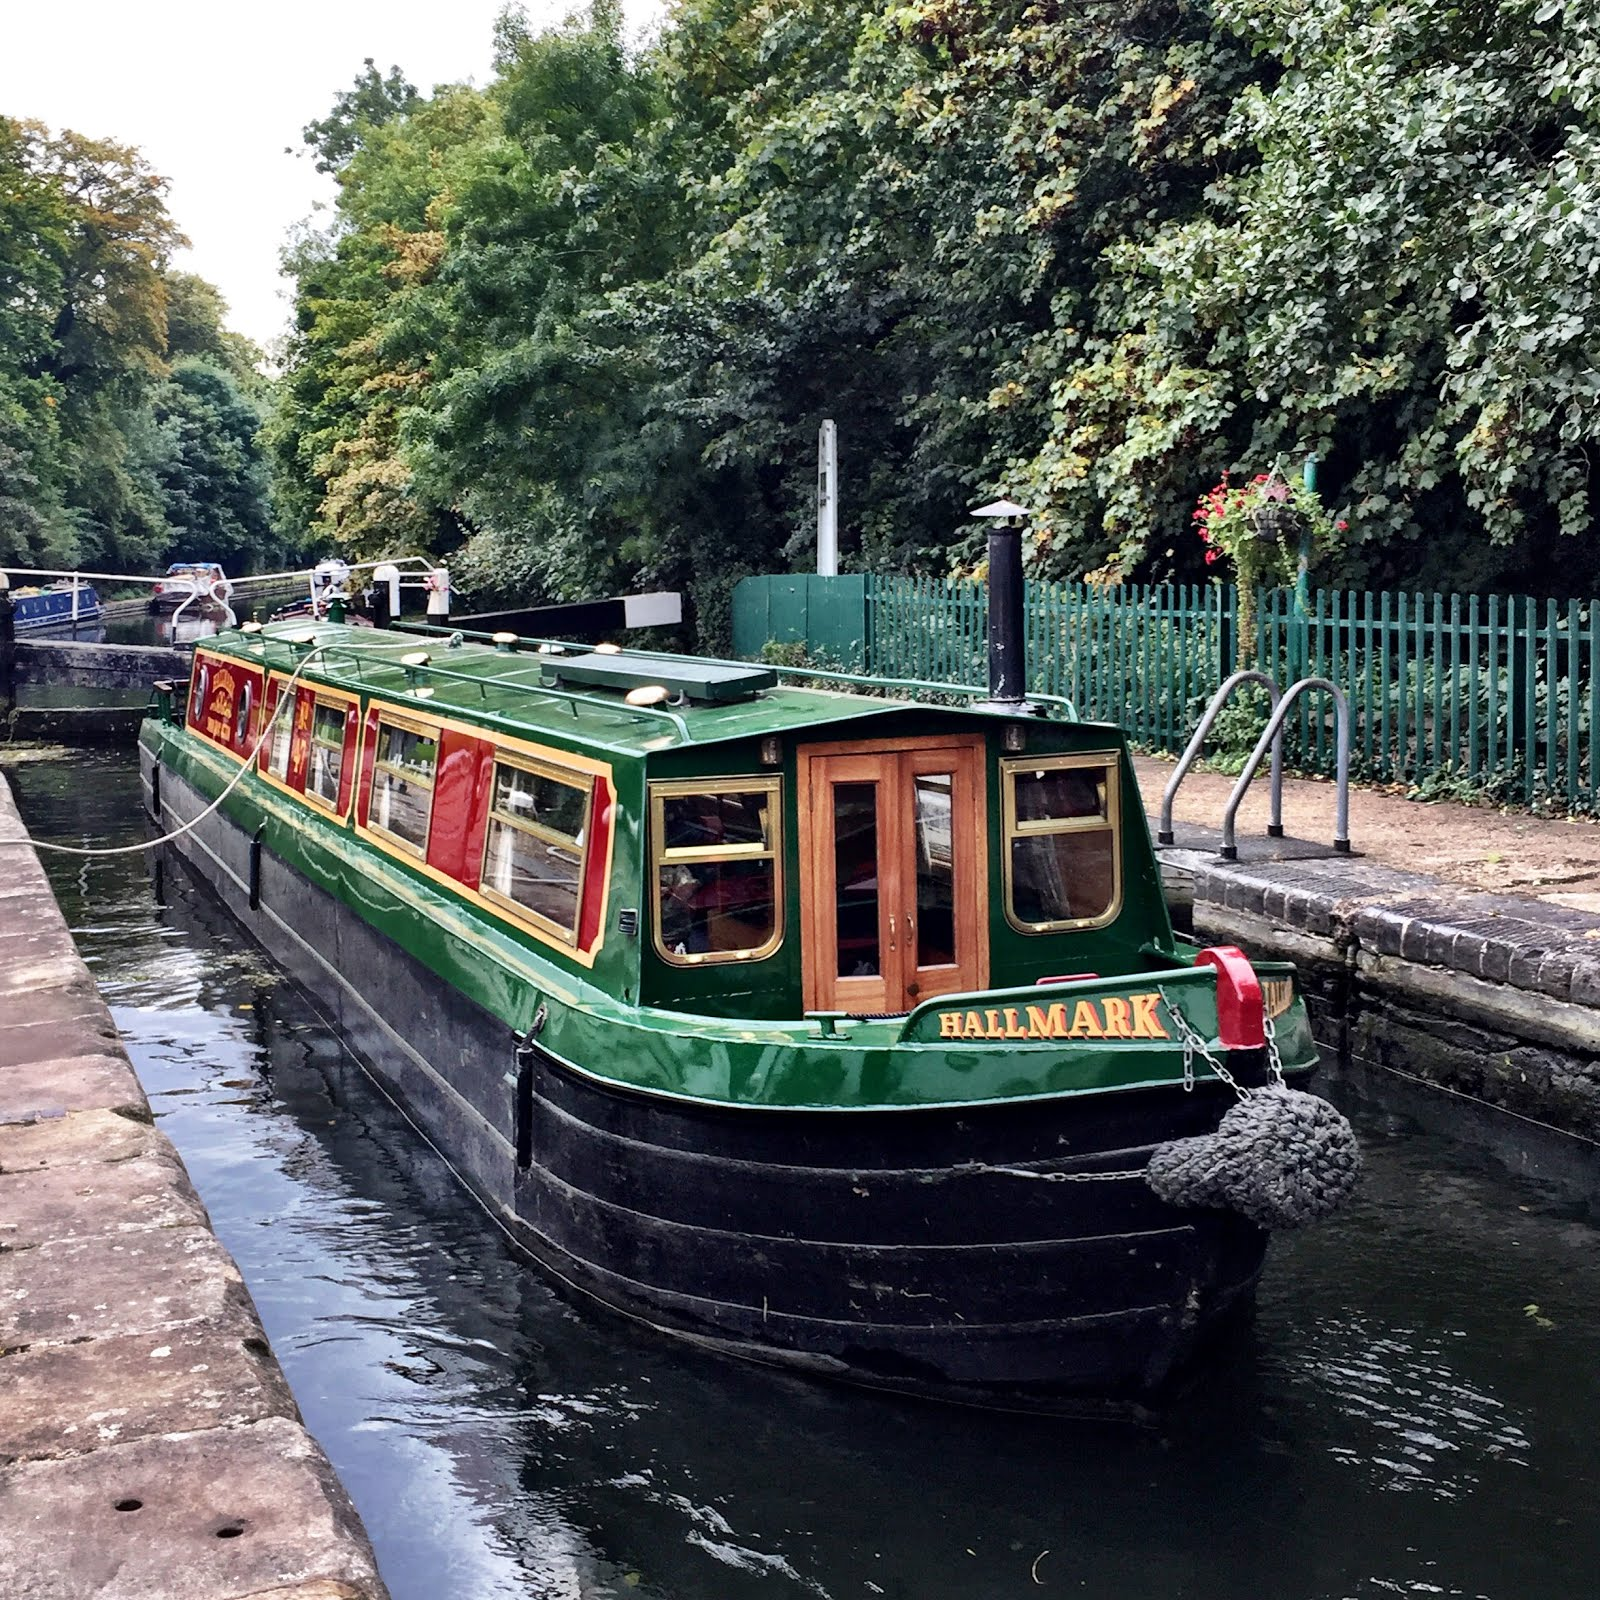 Hallmark at Cowley Lock